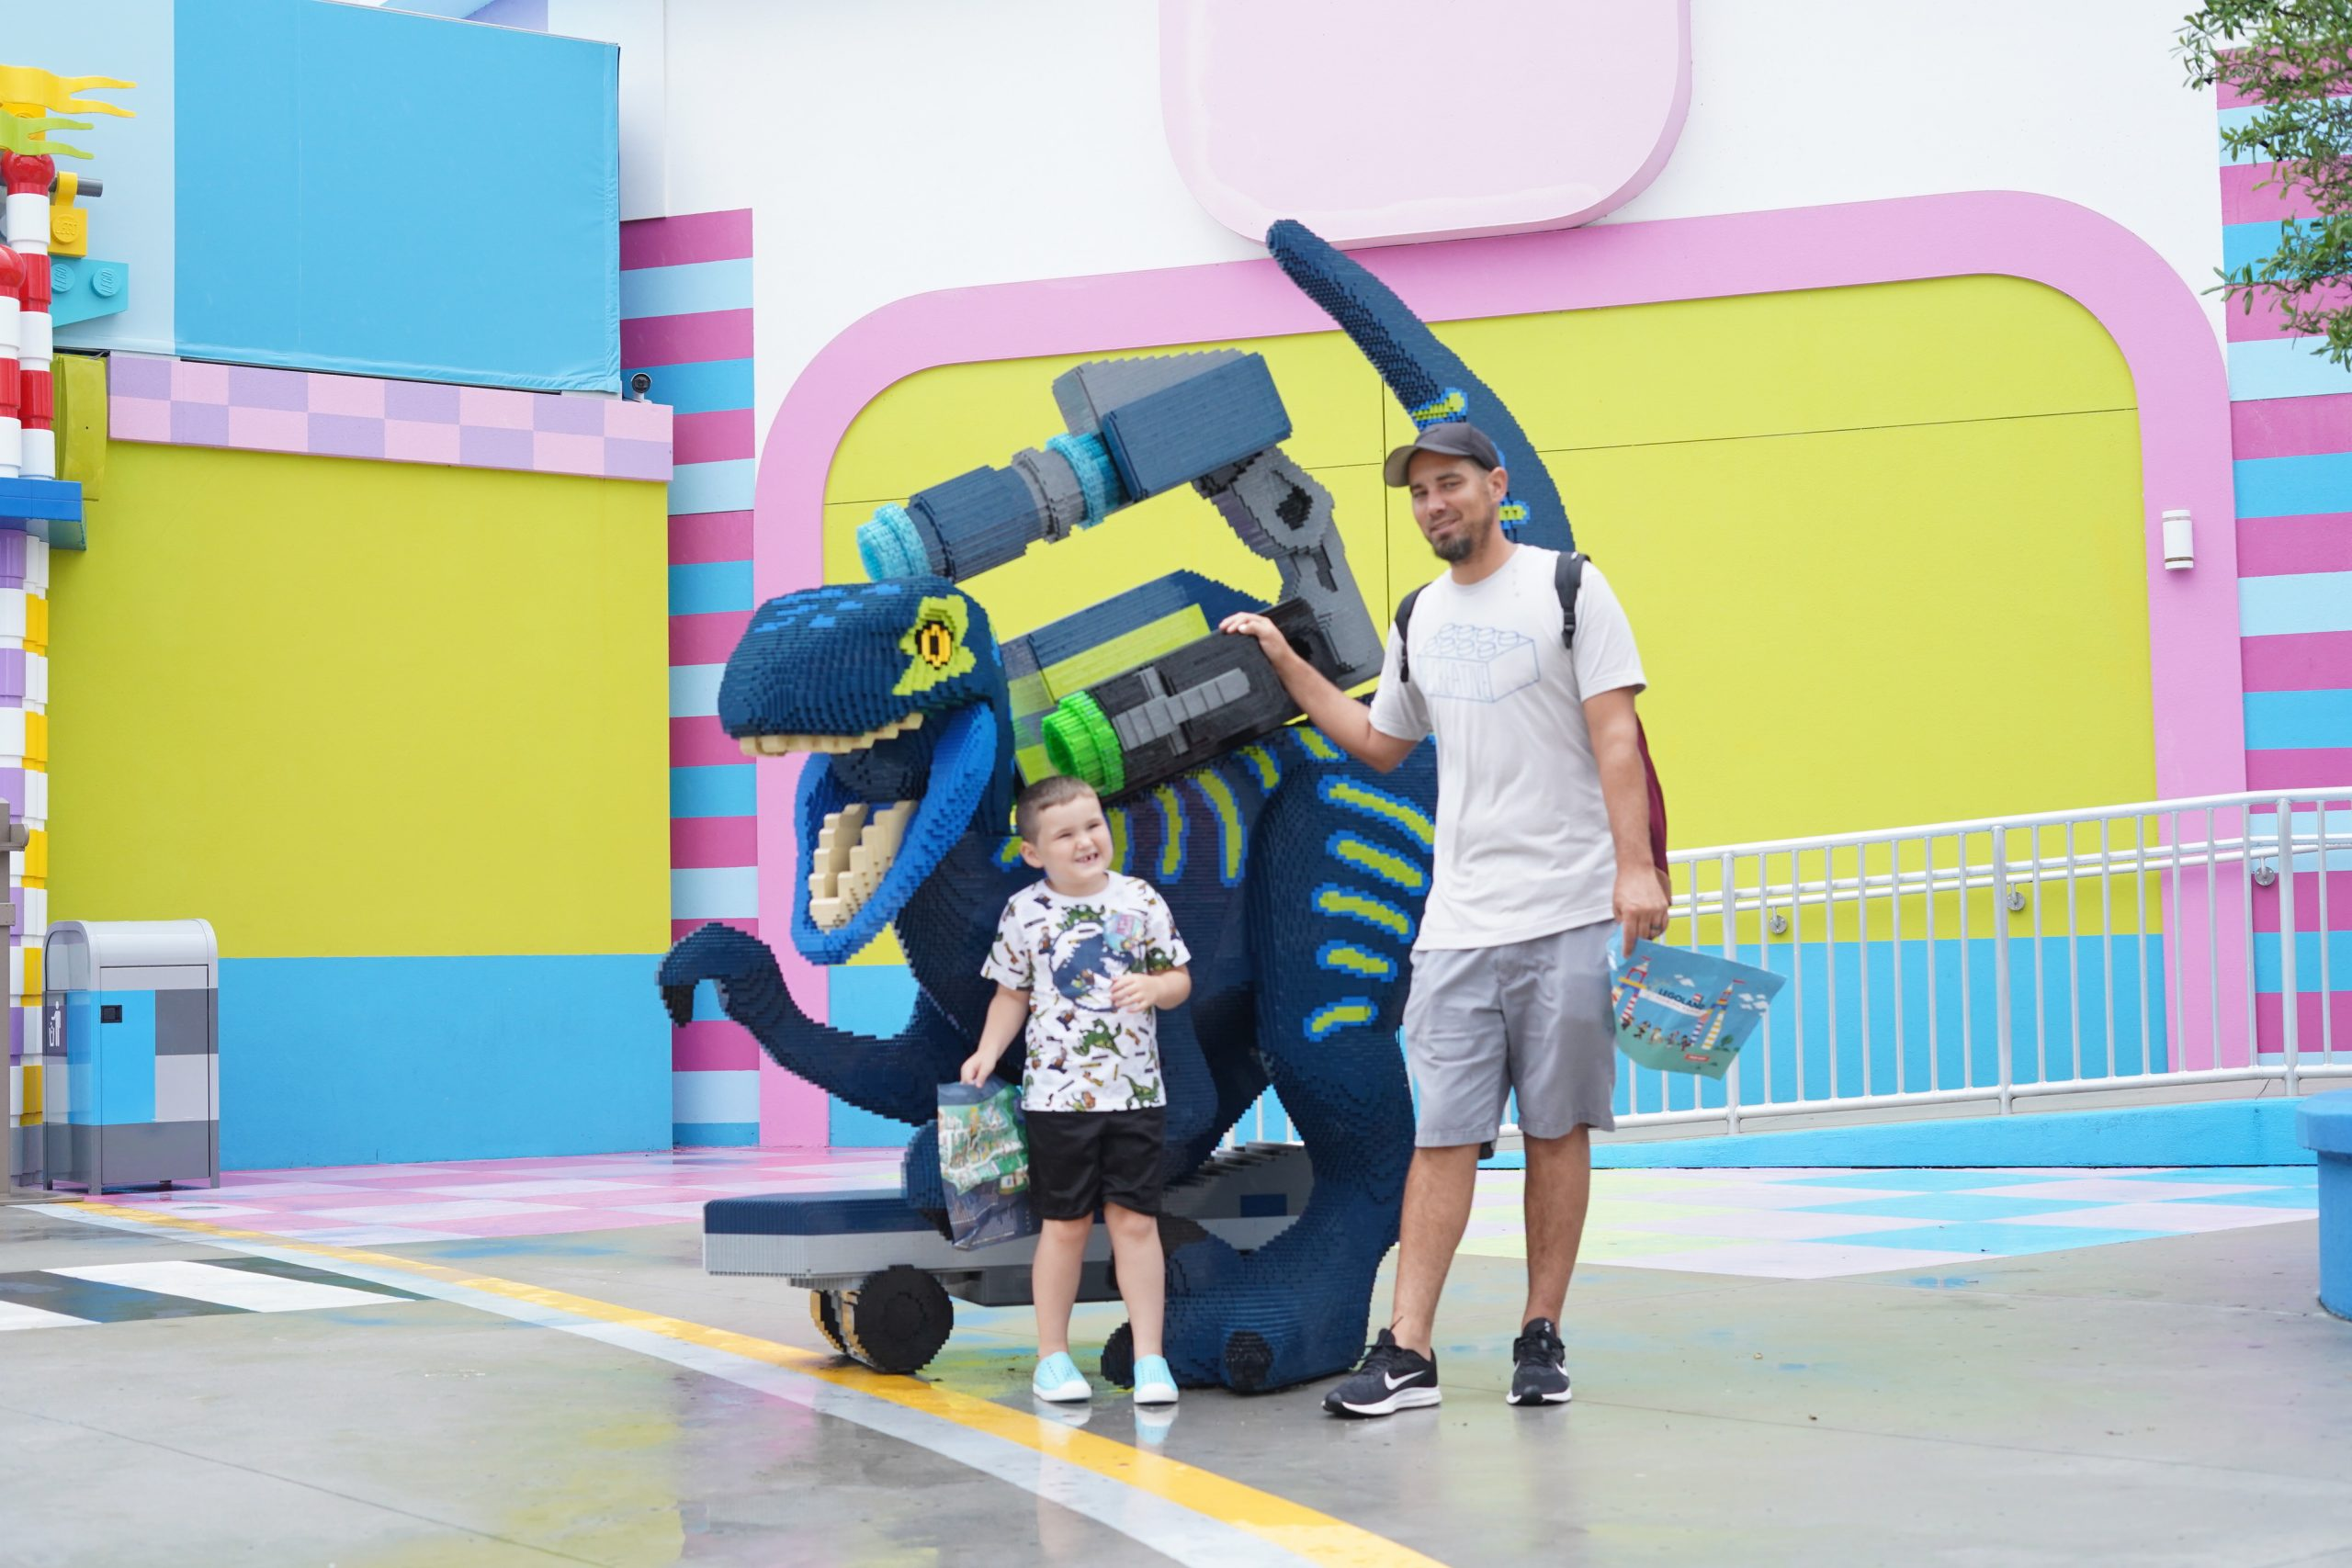 Man with little boy standing in front of lego dinosaur for the Lego Movie World in LEGOLAND.  | Guide to LEGOLAND Florida